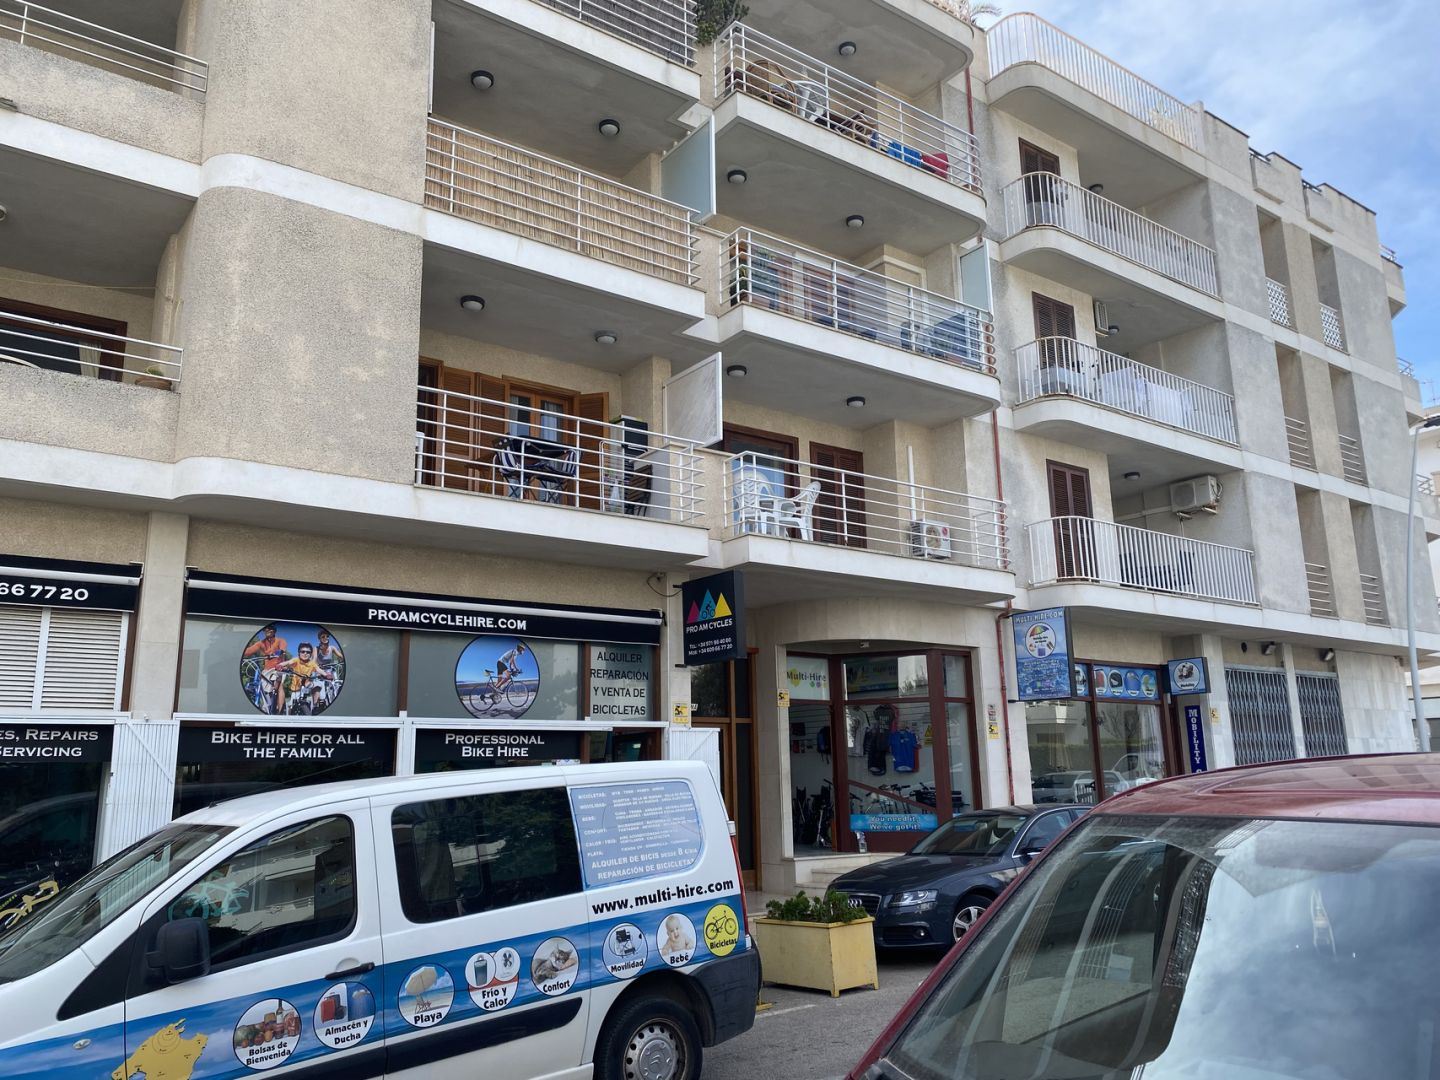 1 Bed Apartment for sale in Puerto Pollensa 13